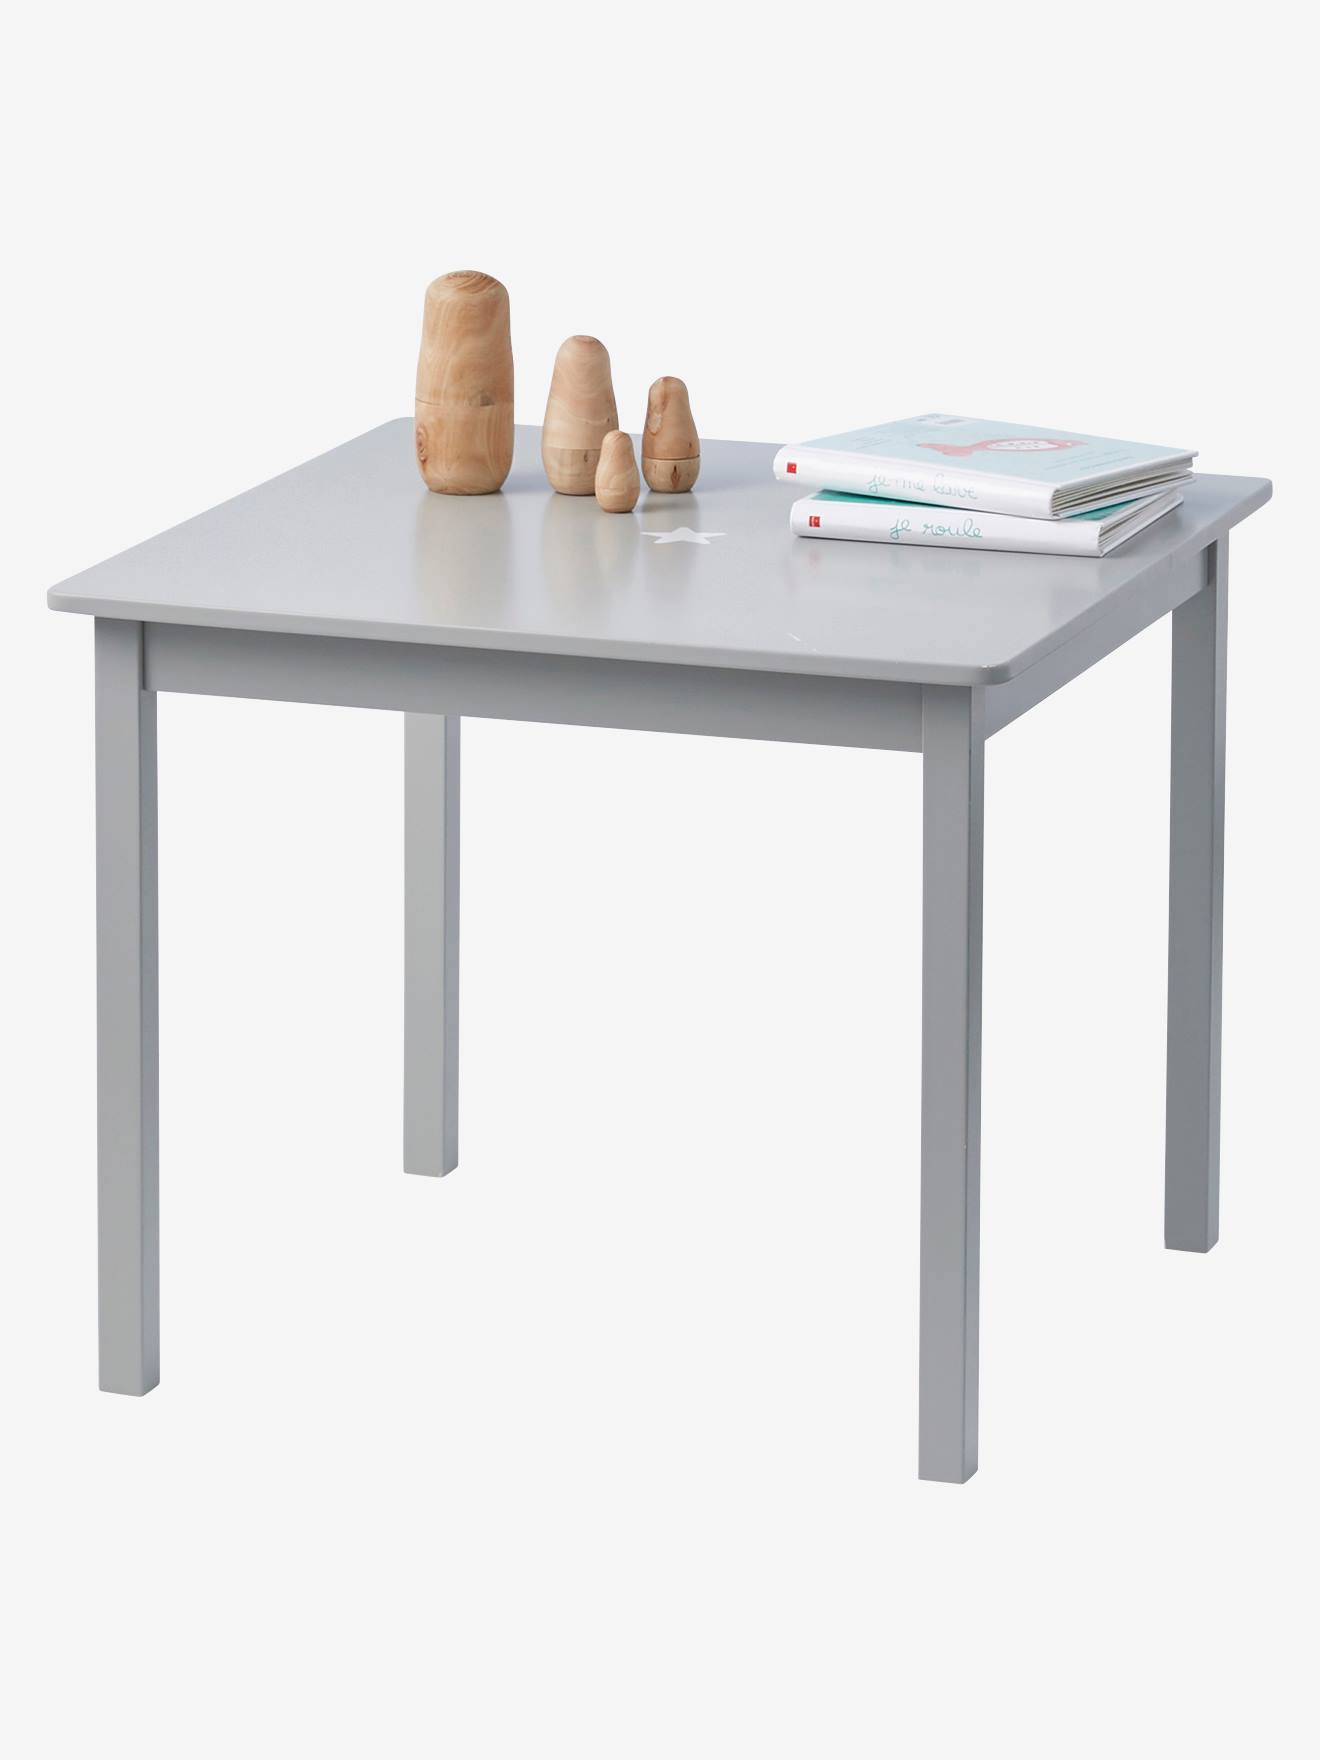 Sirius Childrens Play Table Furniture & Bedding